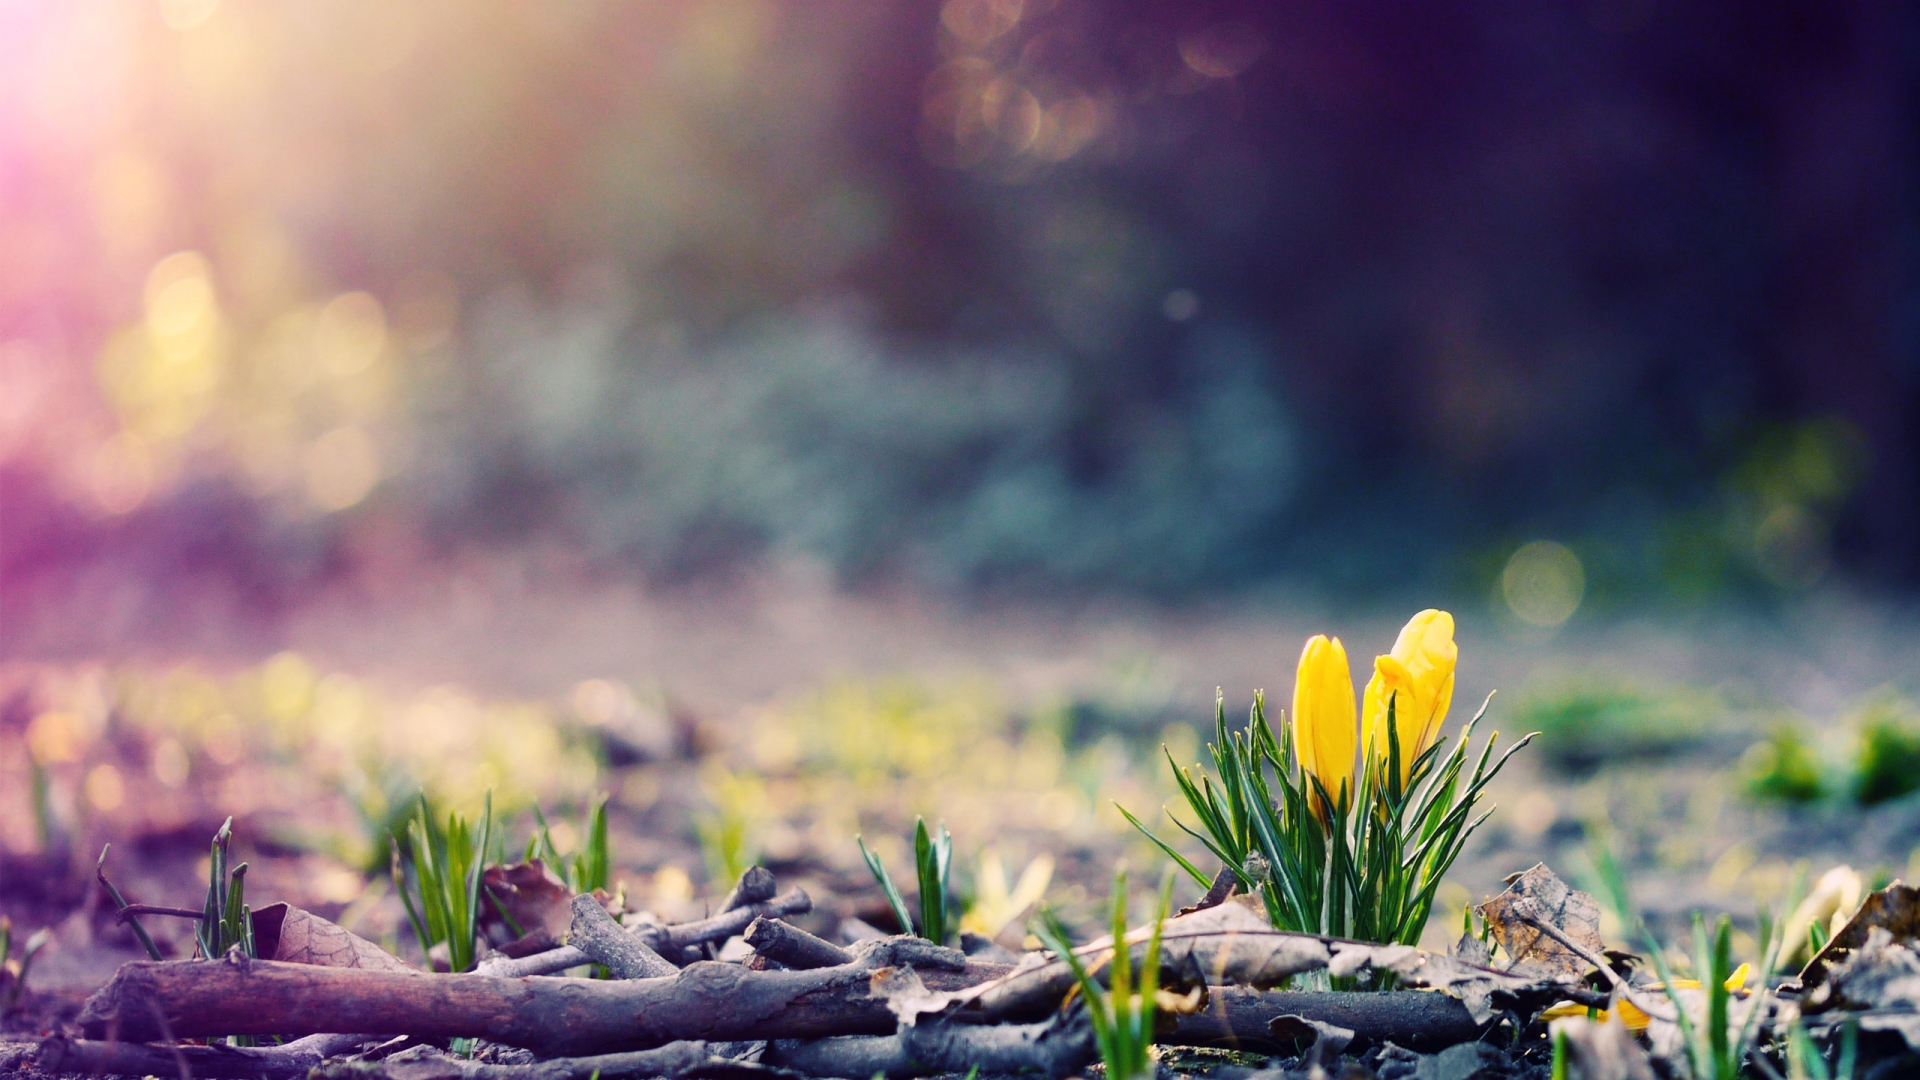 spring hd wallpapers 1080p